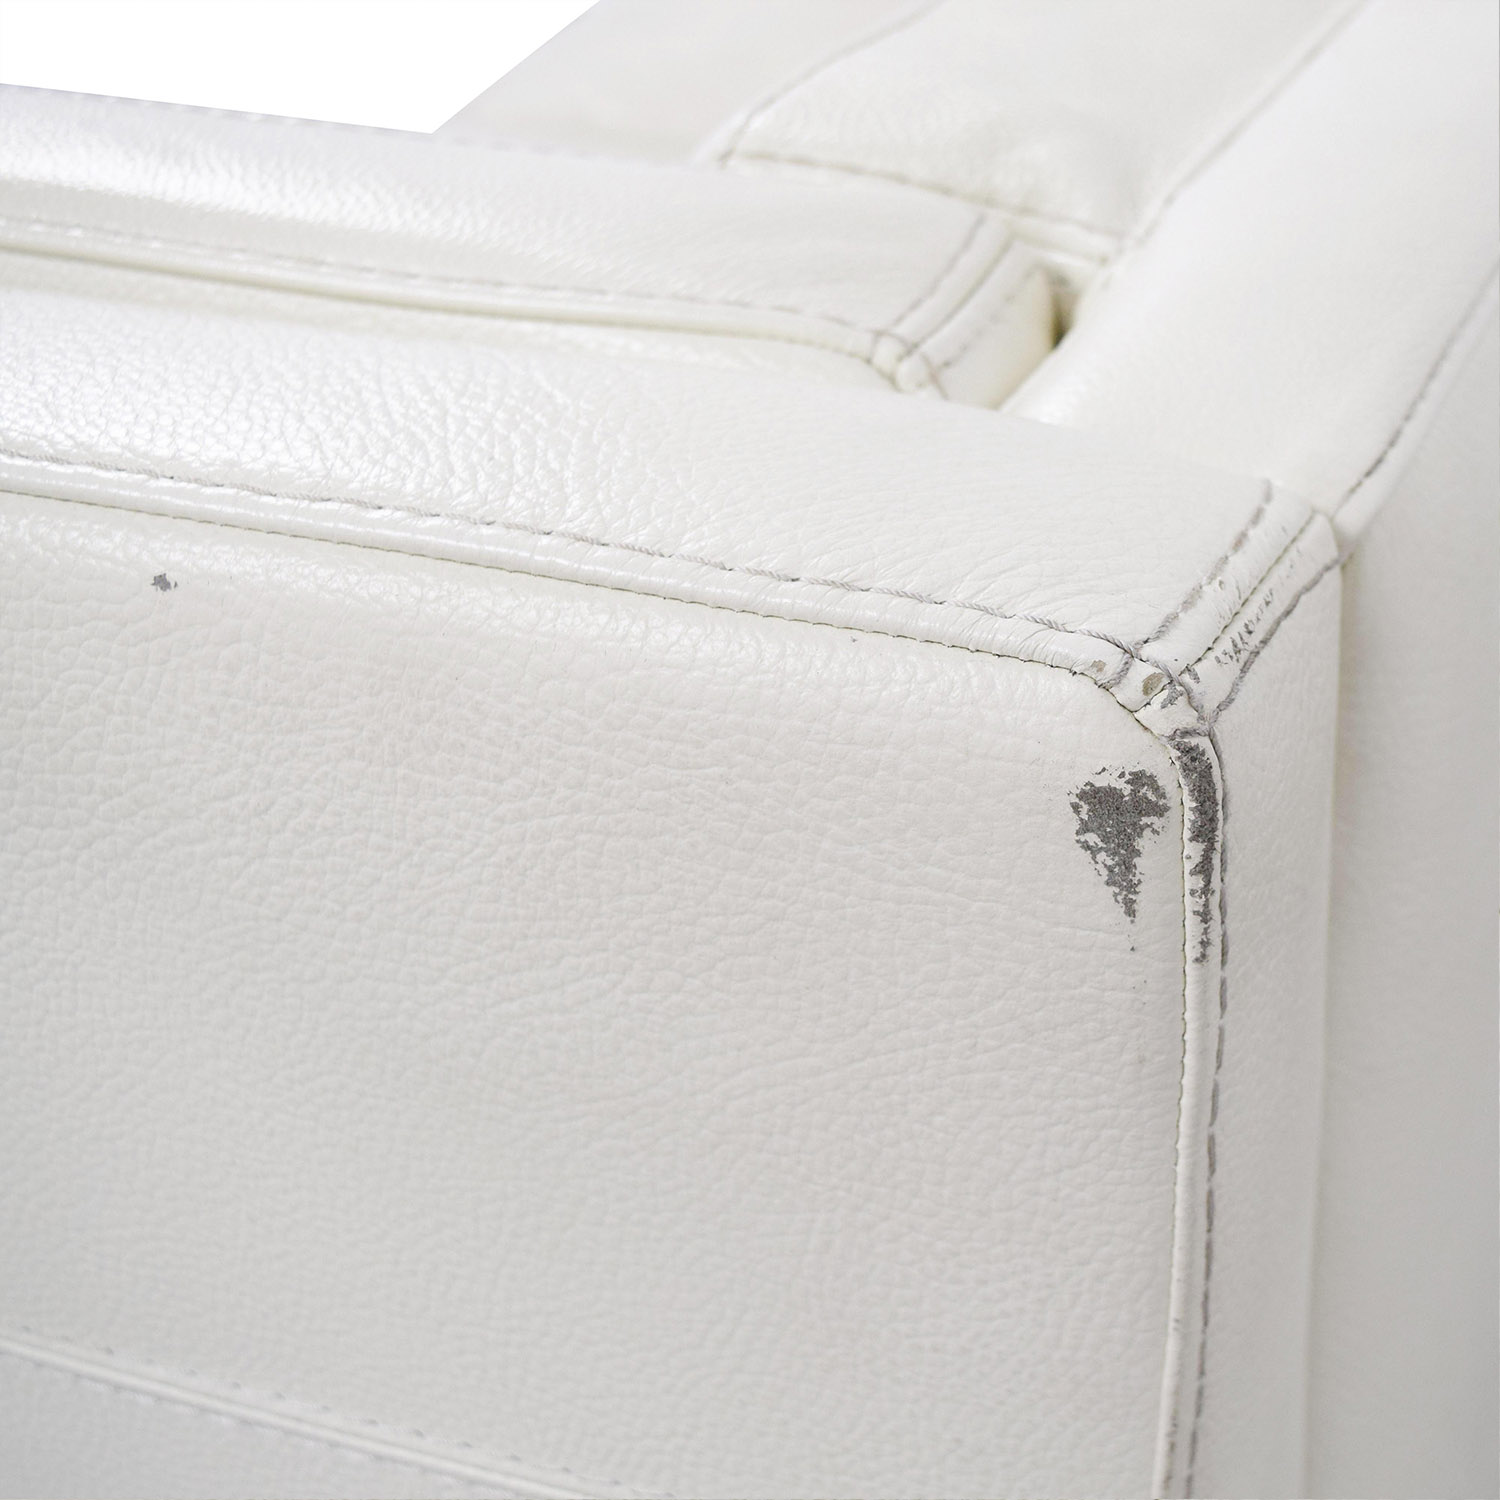 Macys Tufted Pearl White Faux Leather Couch sale